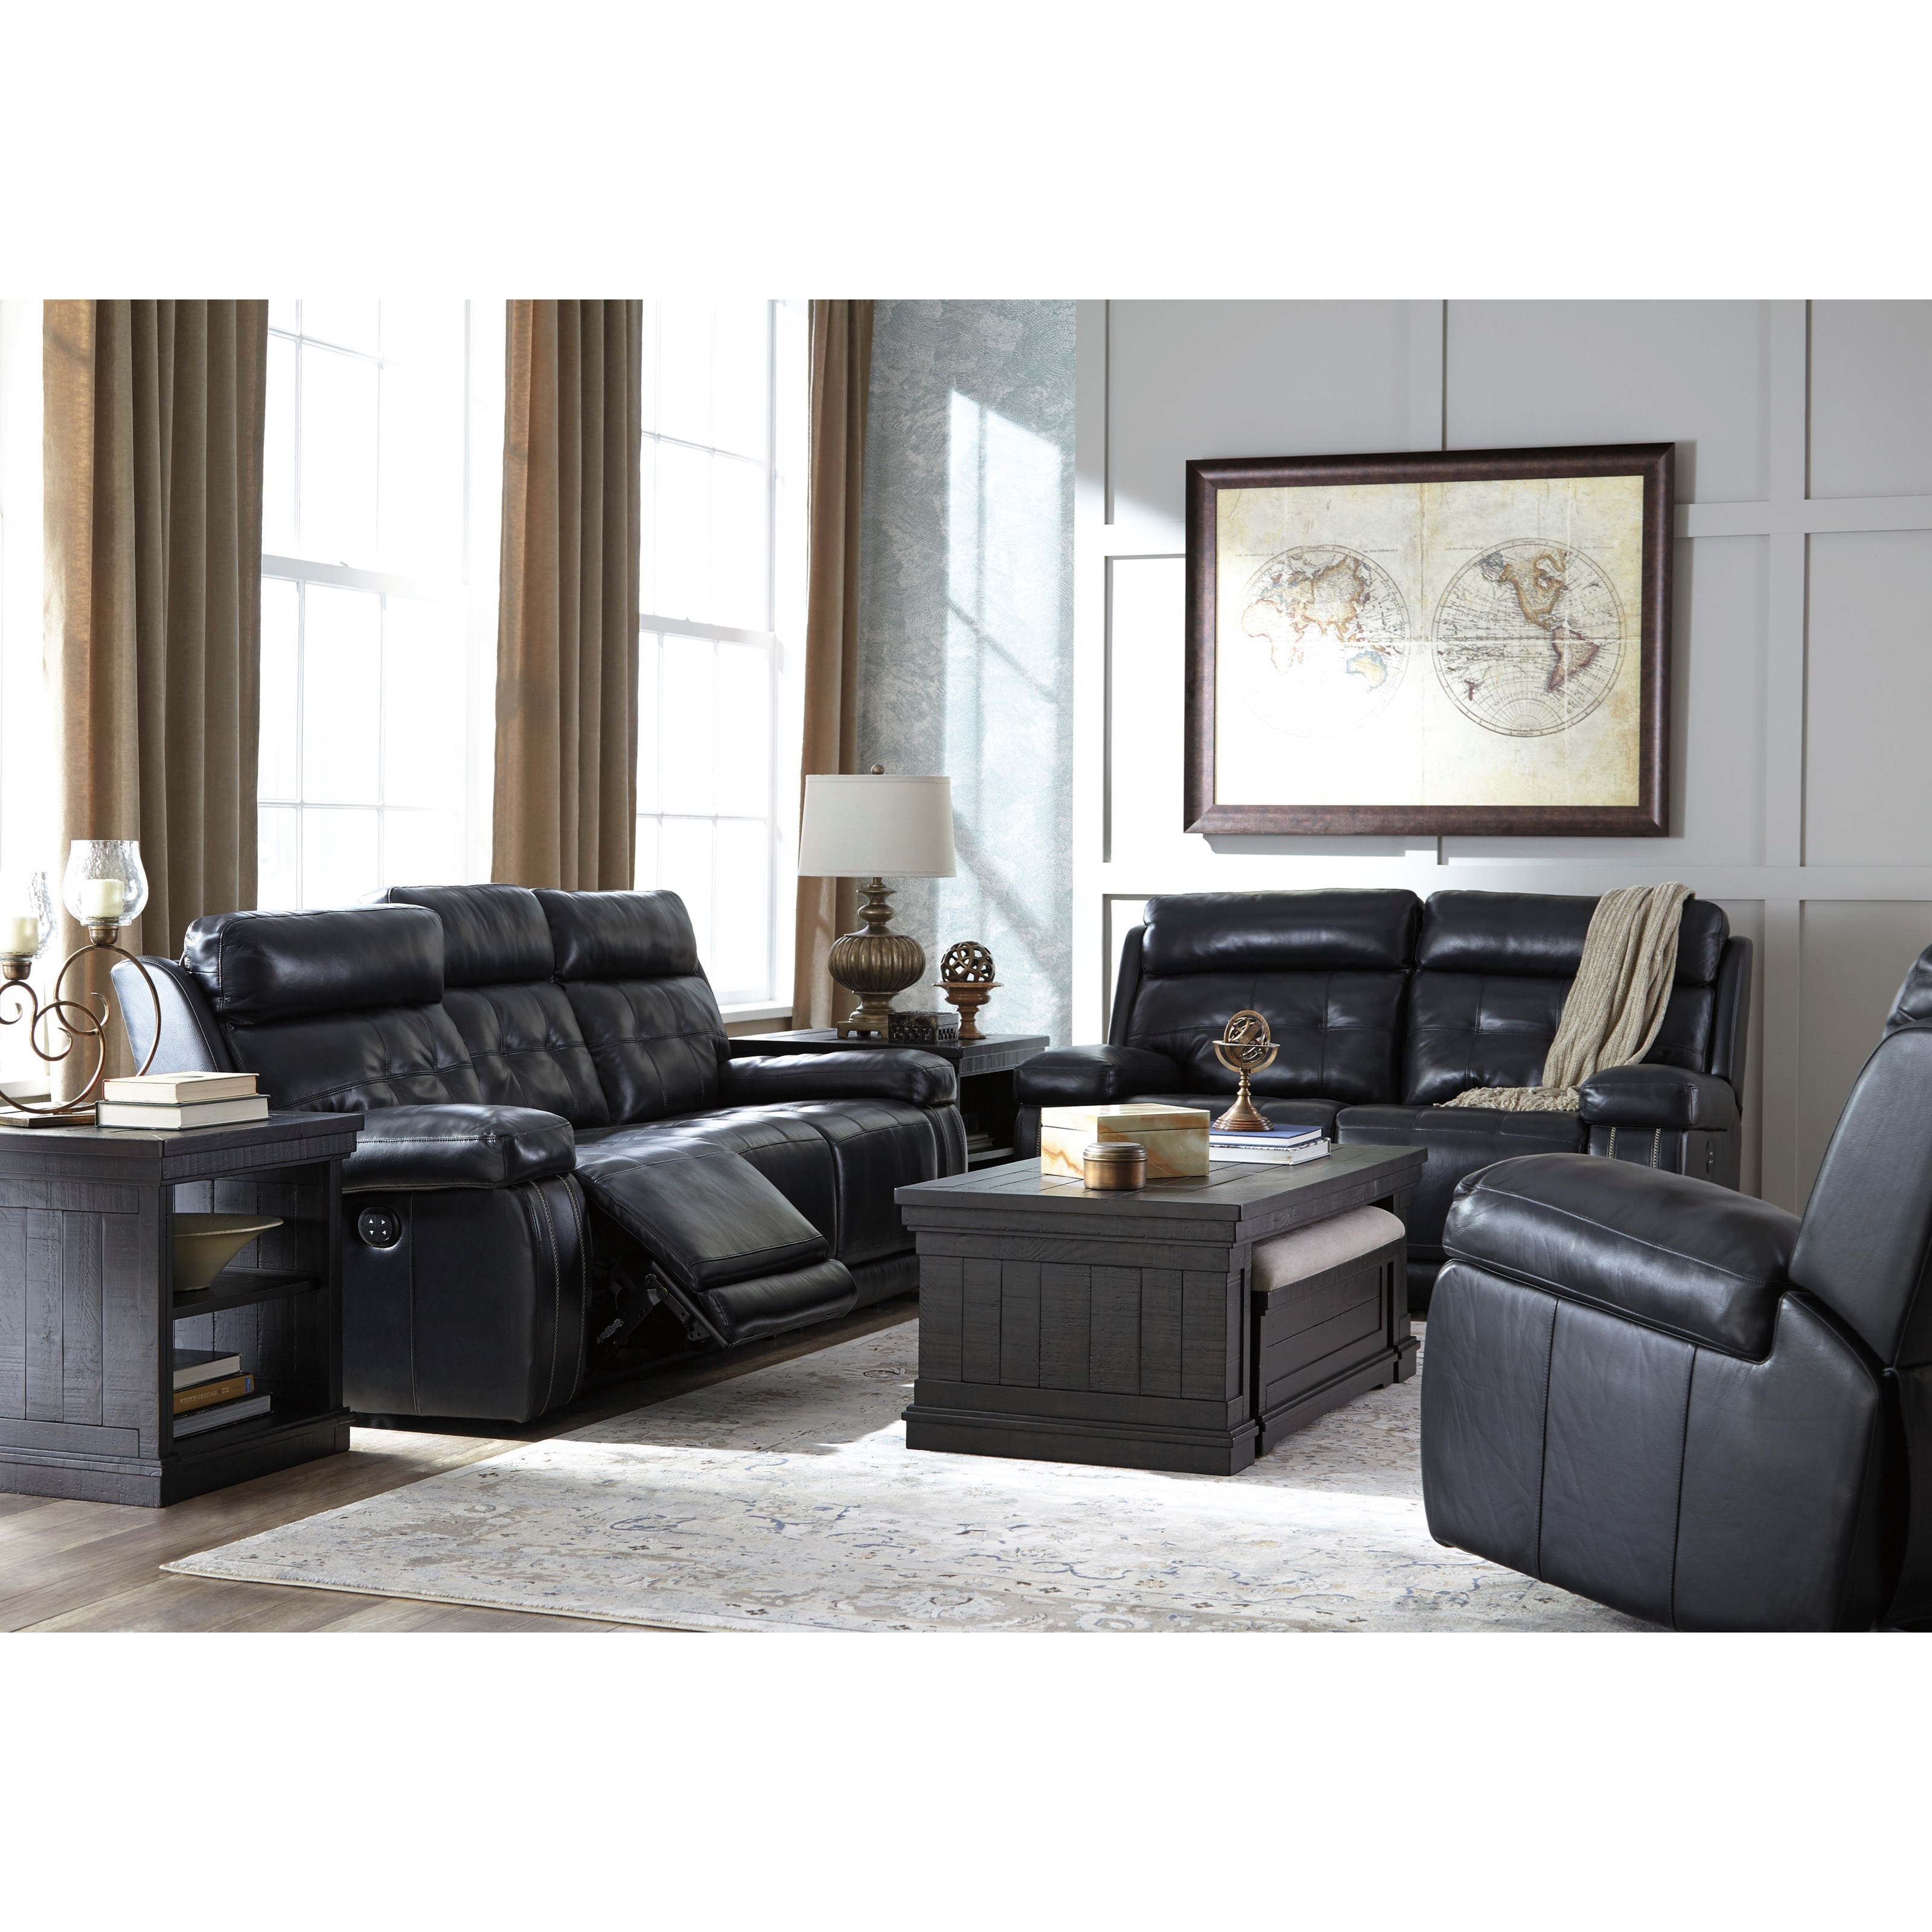 Ashley Signature Design Graford Reclining Living Room Group Dunk Brig